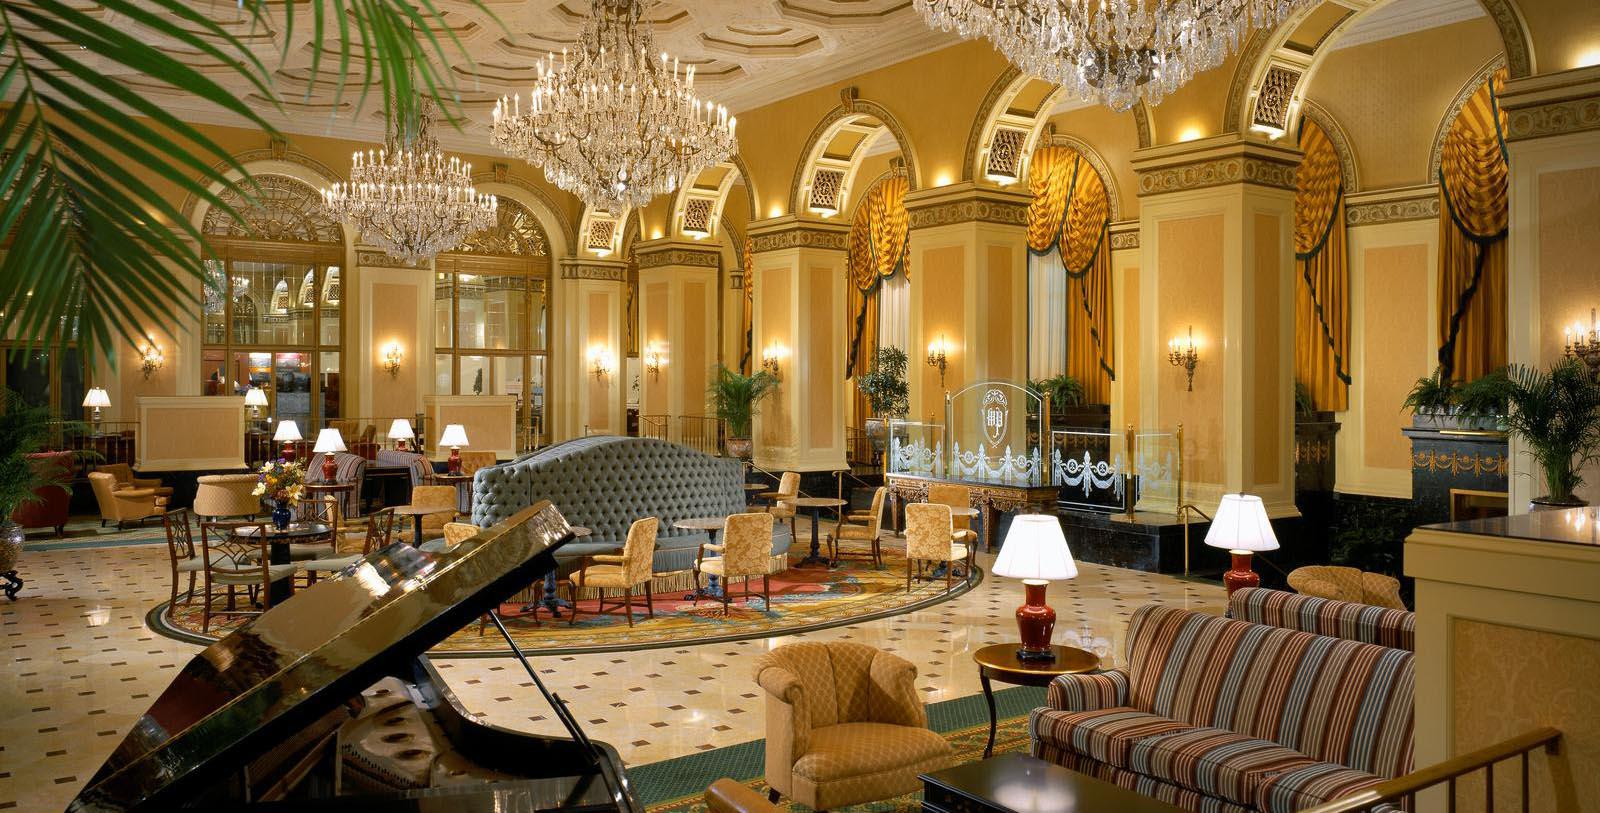 Image of lobby with chandeliers and piano at the Omni William Penn Hotel, Pittsburgh, Pennsylvania.